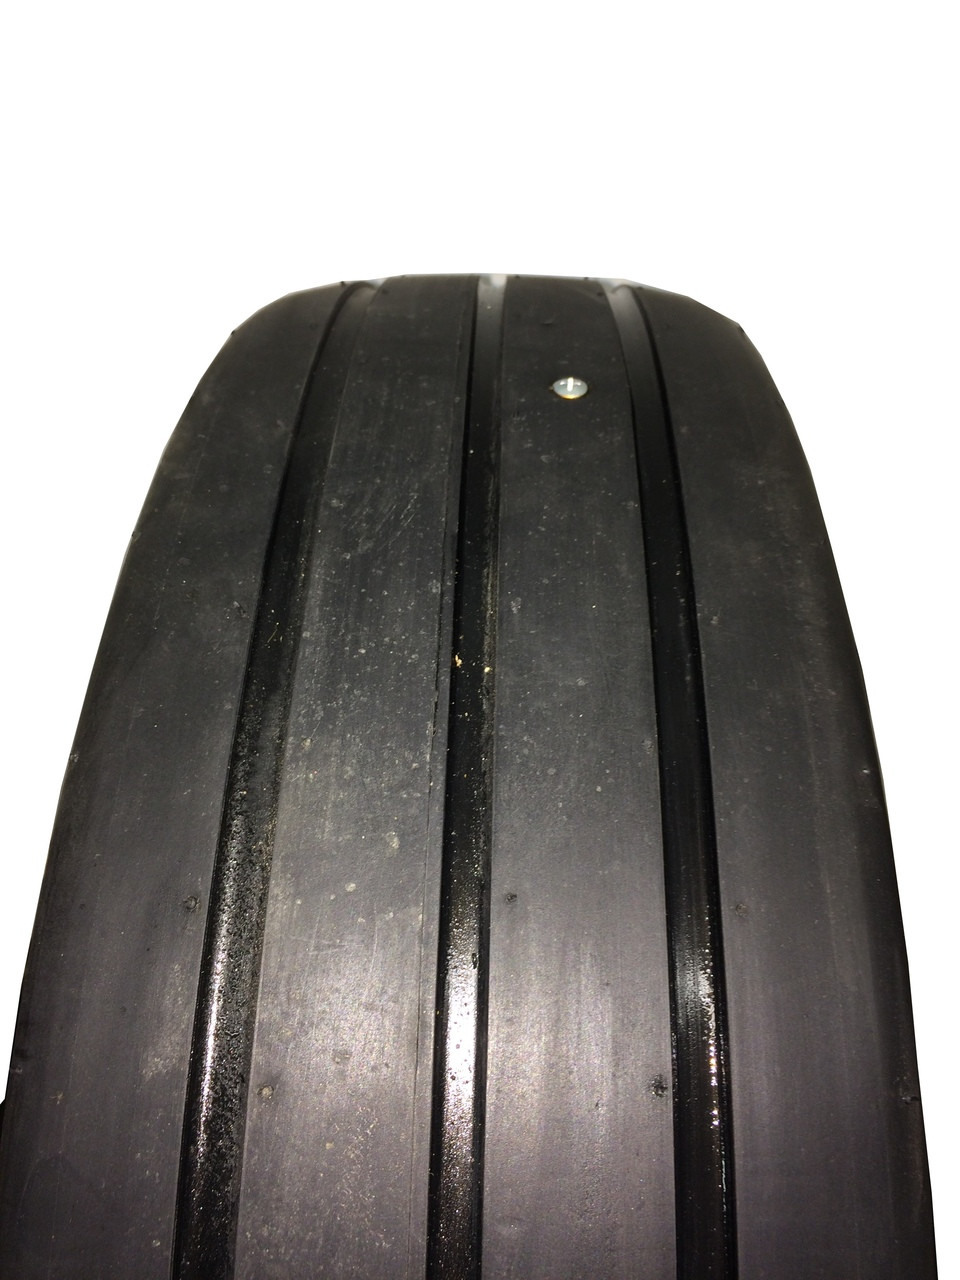 """New 25"""" Tall Batwing Shredder Foam Filled Tire on Rim - Free Shipping in 48 USA States"""